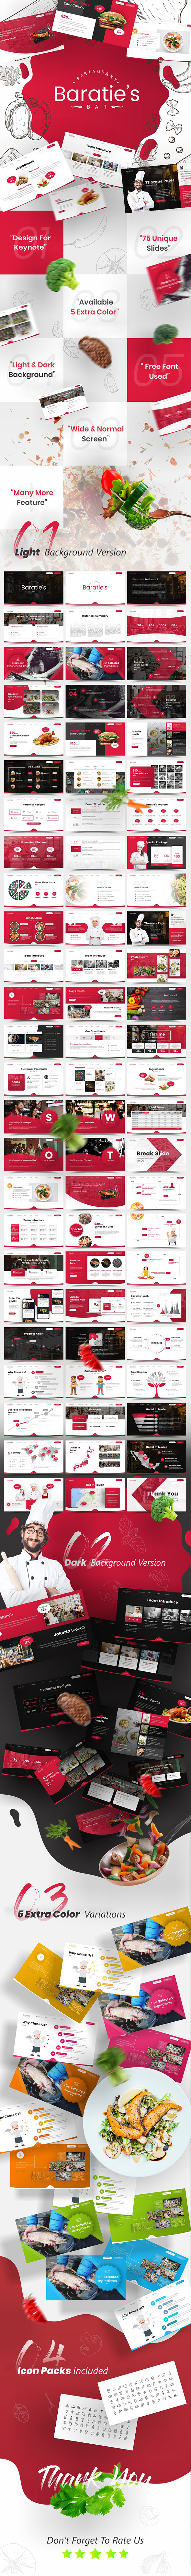 Baratie's Multipurpose Food & Beverage Business Keynote Template